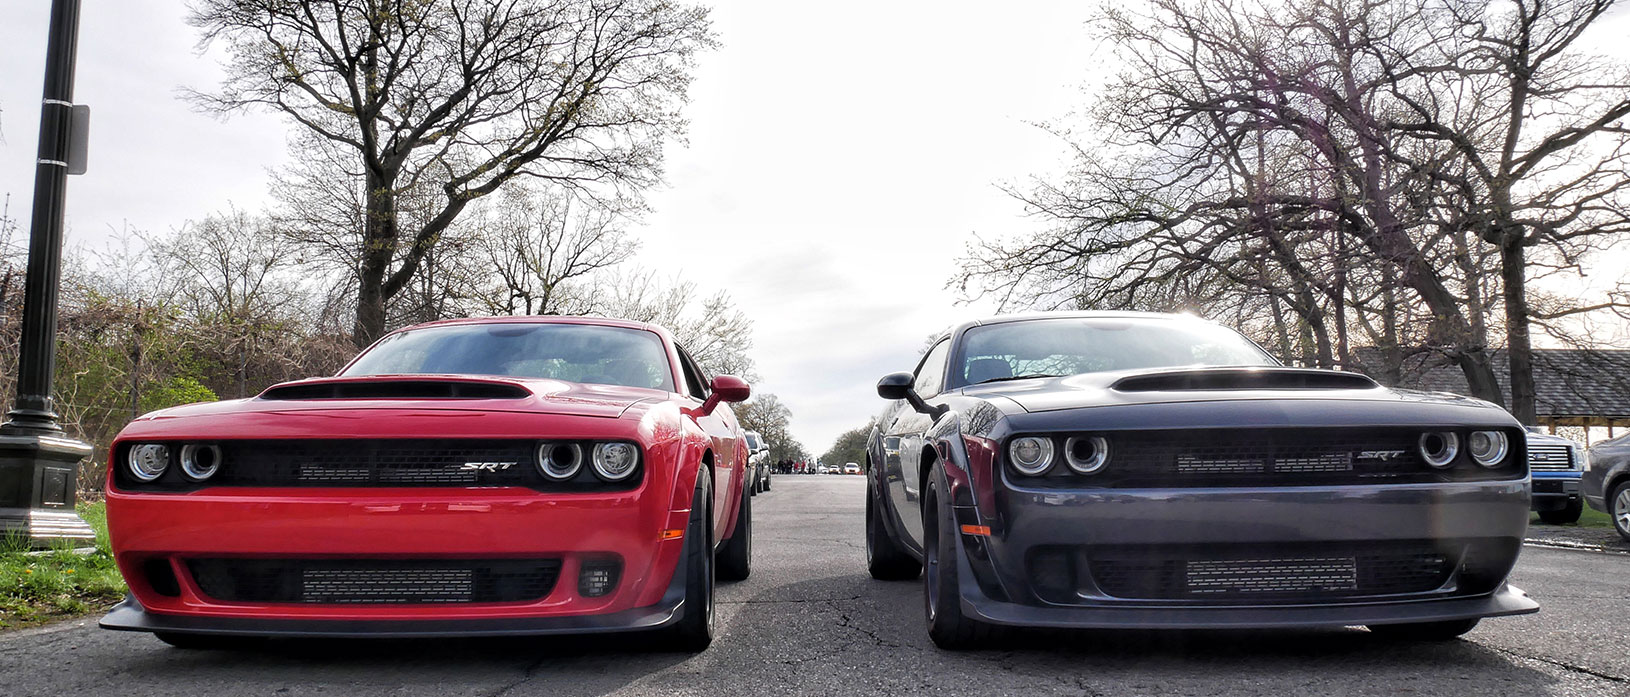 Red Demon next to a gray Demon